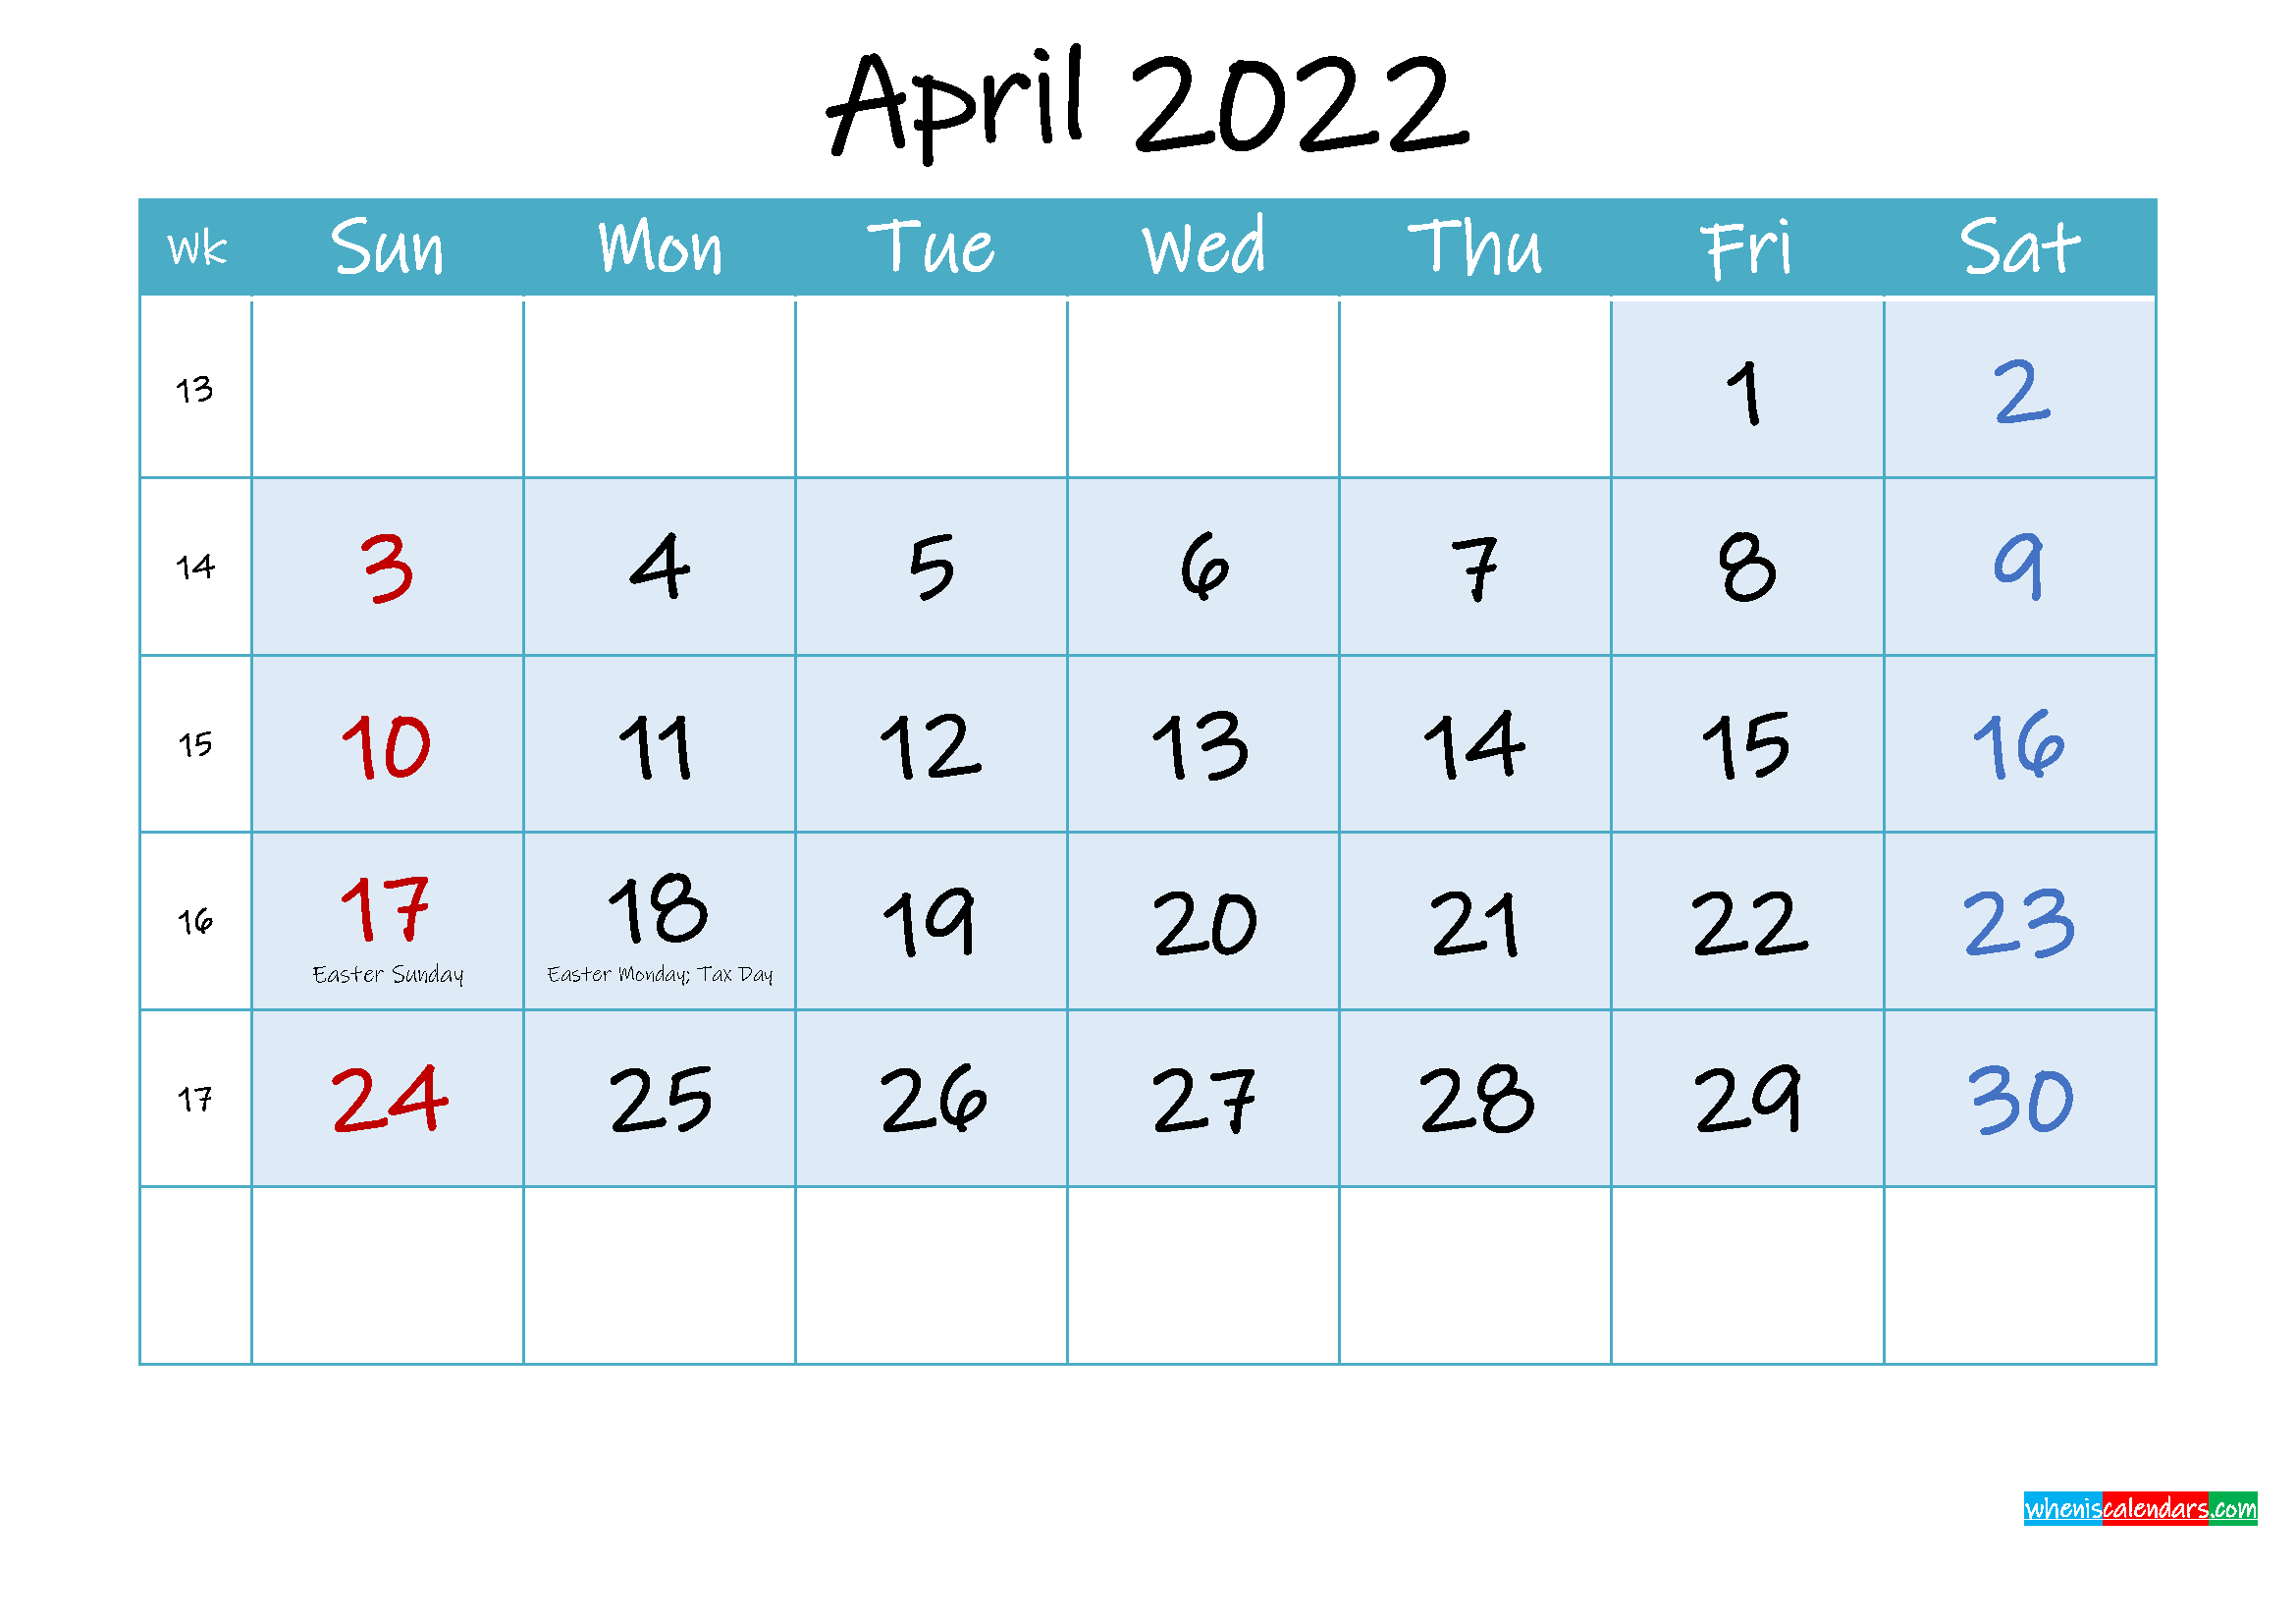 April 2022 Free Printable Calendar with Holidays